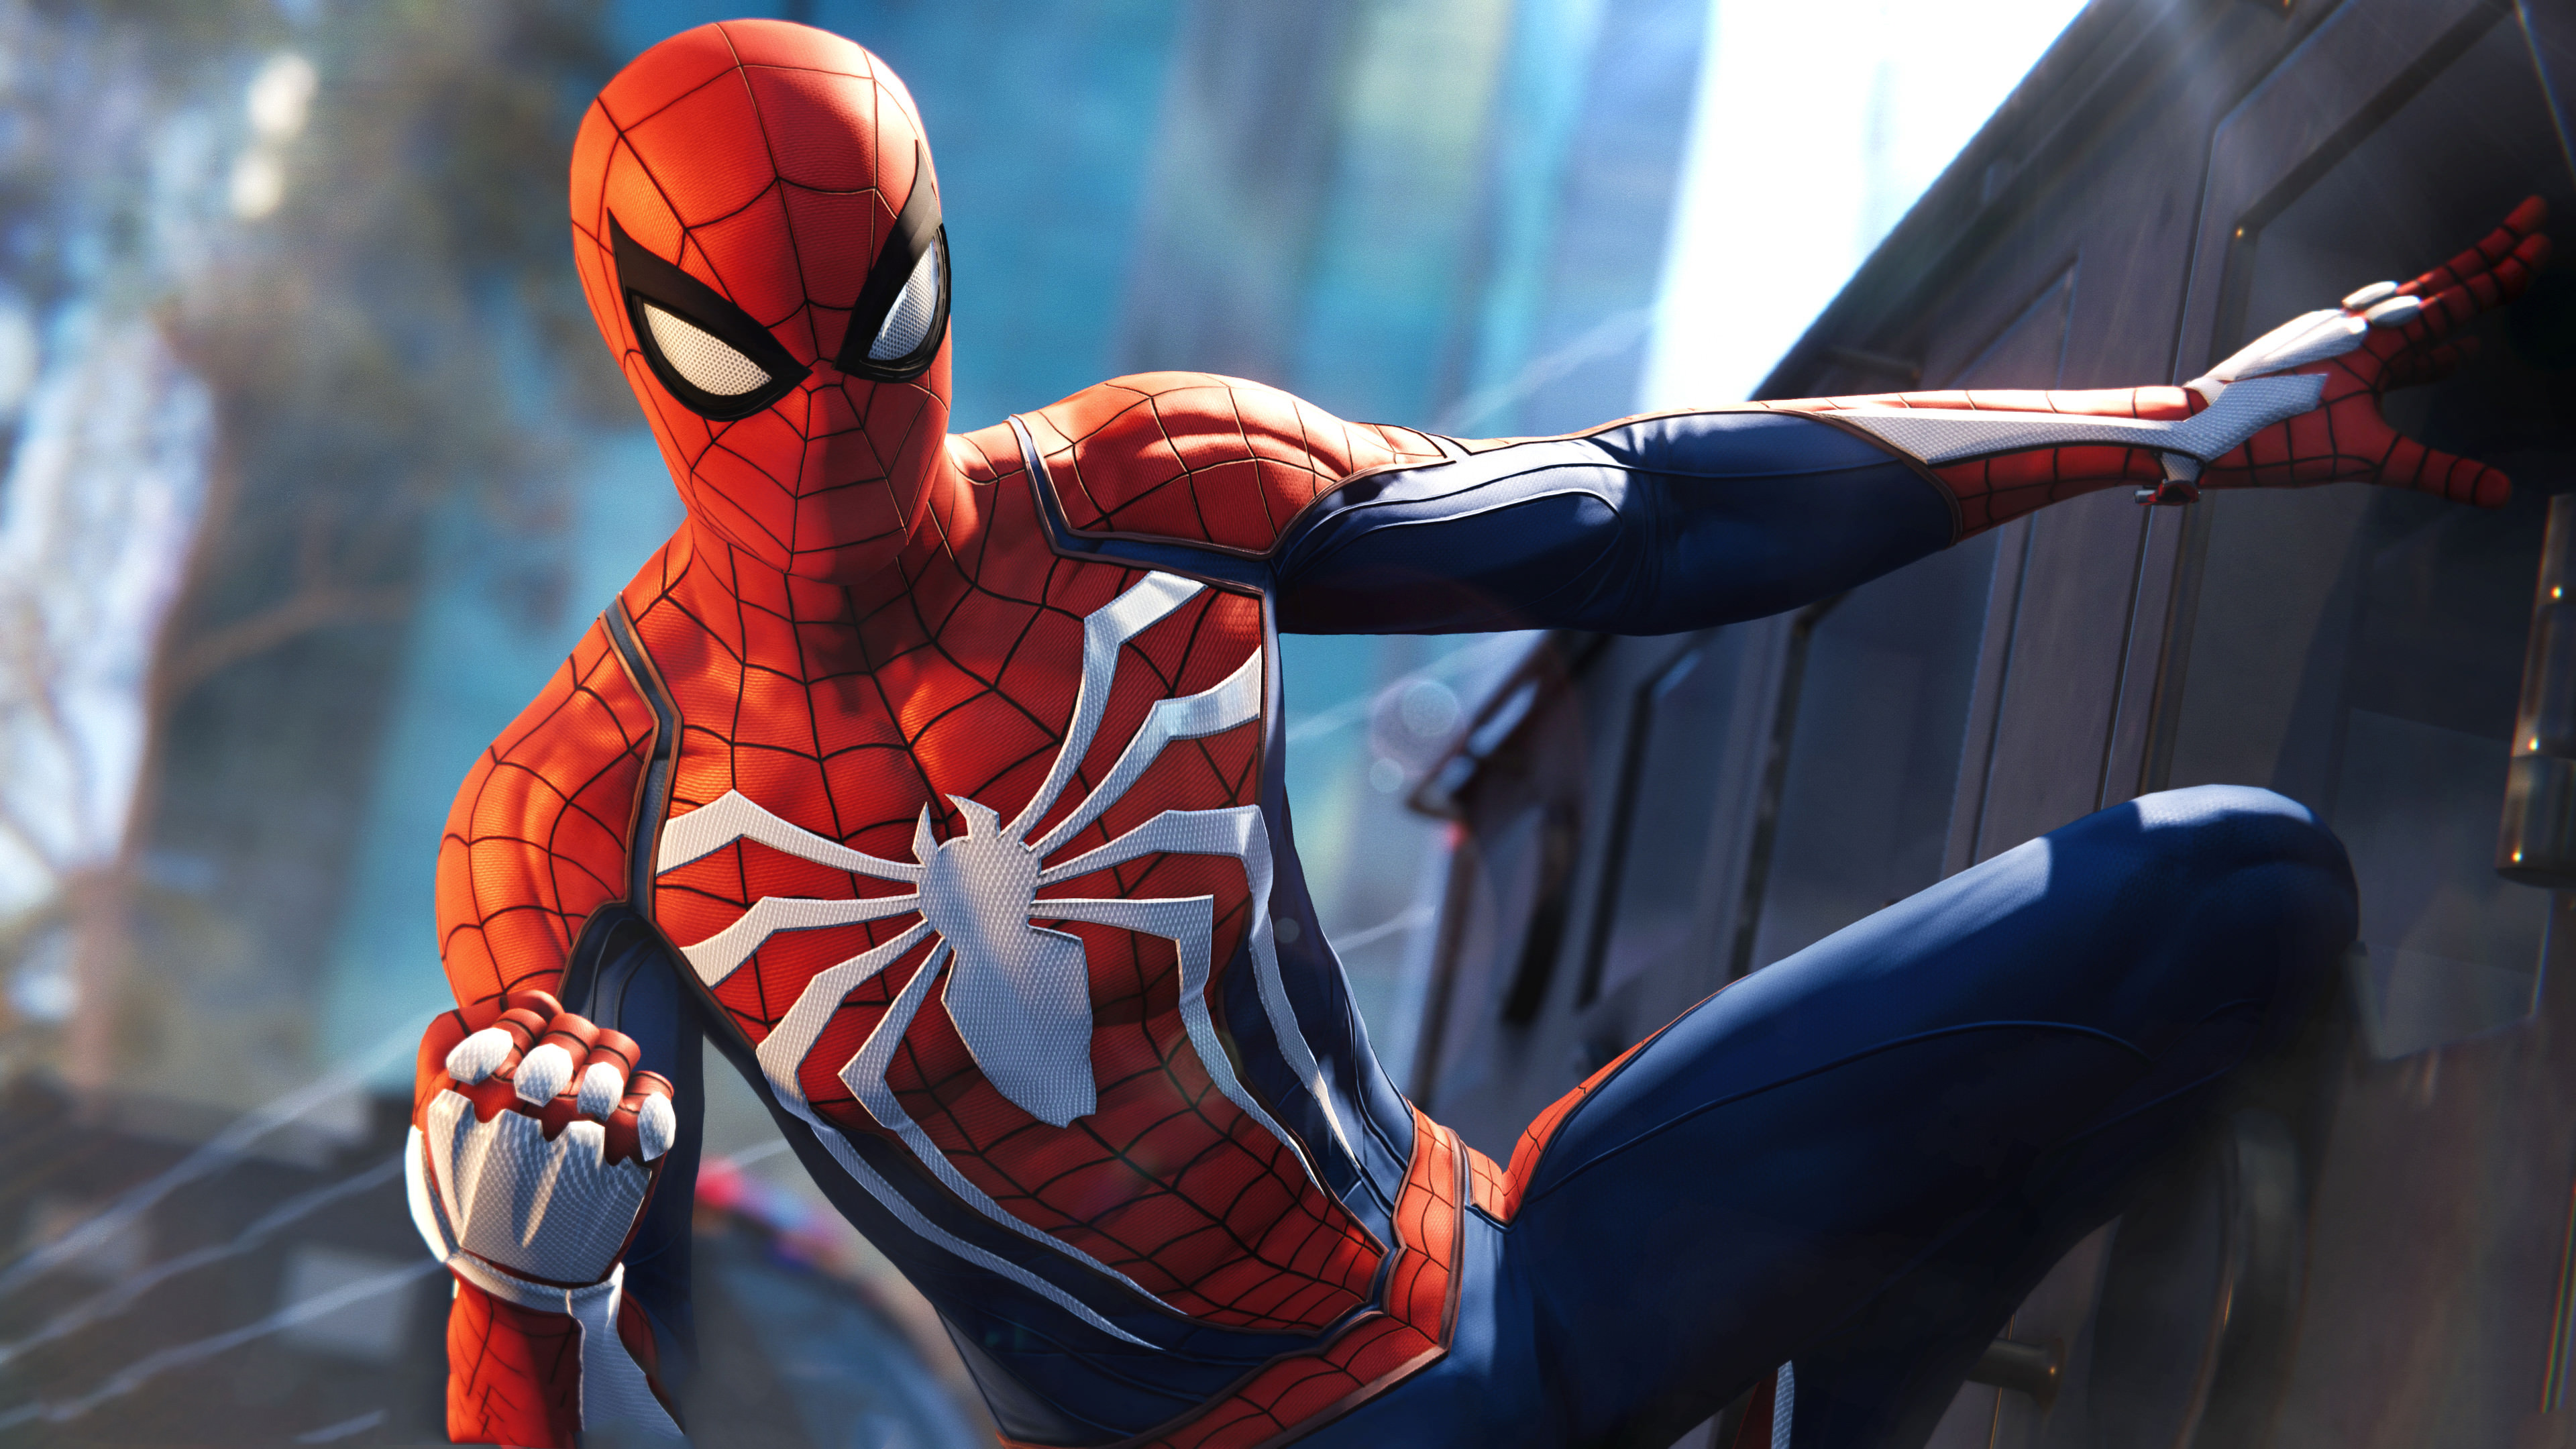 Game Of Spider Man Hd Wallpaper: Spider Man PS4 4K Wallpapers